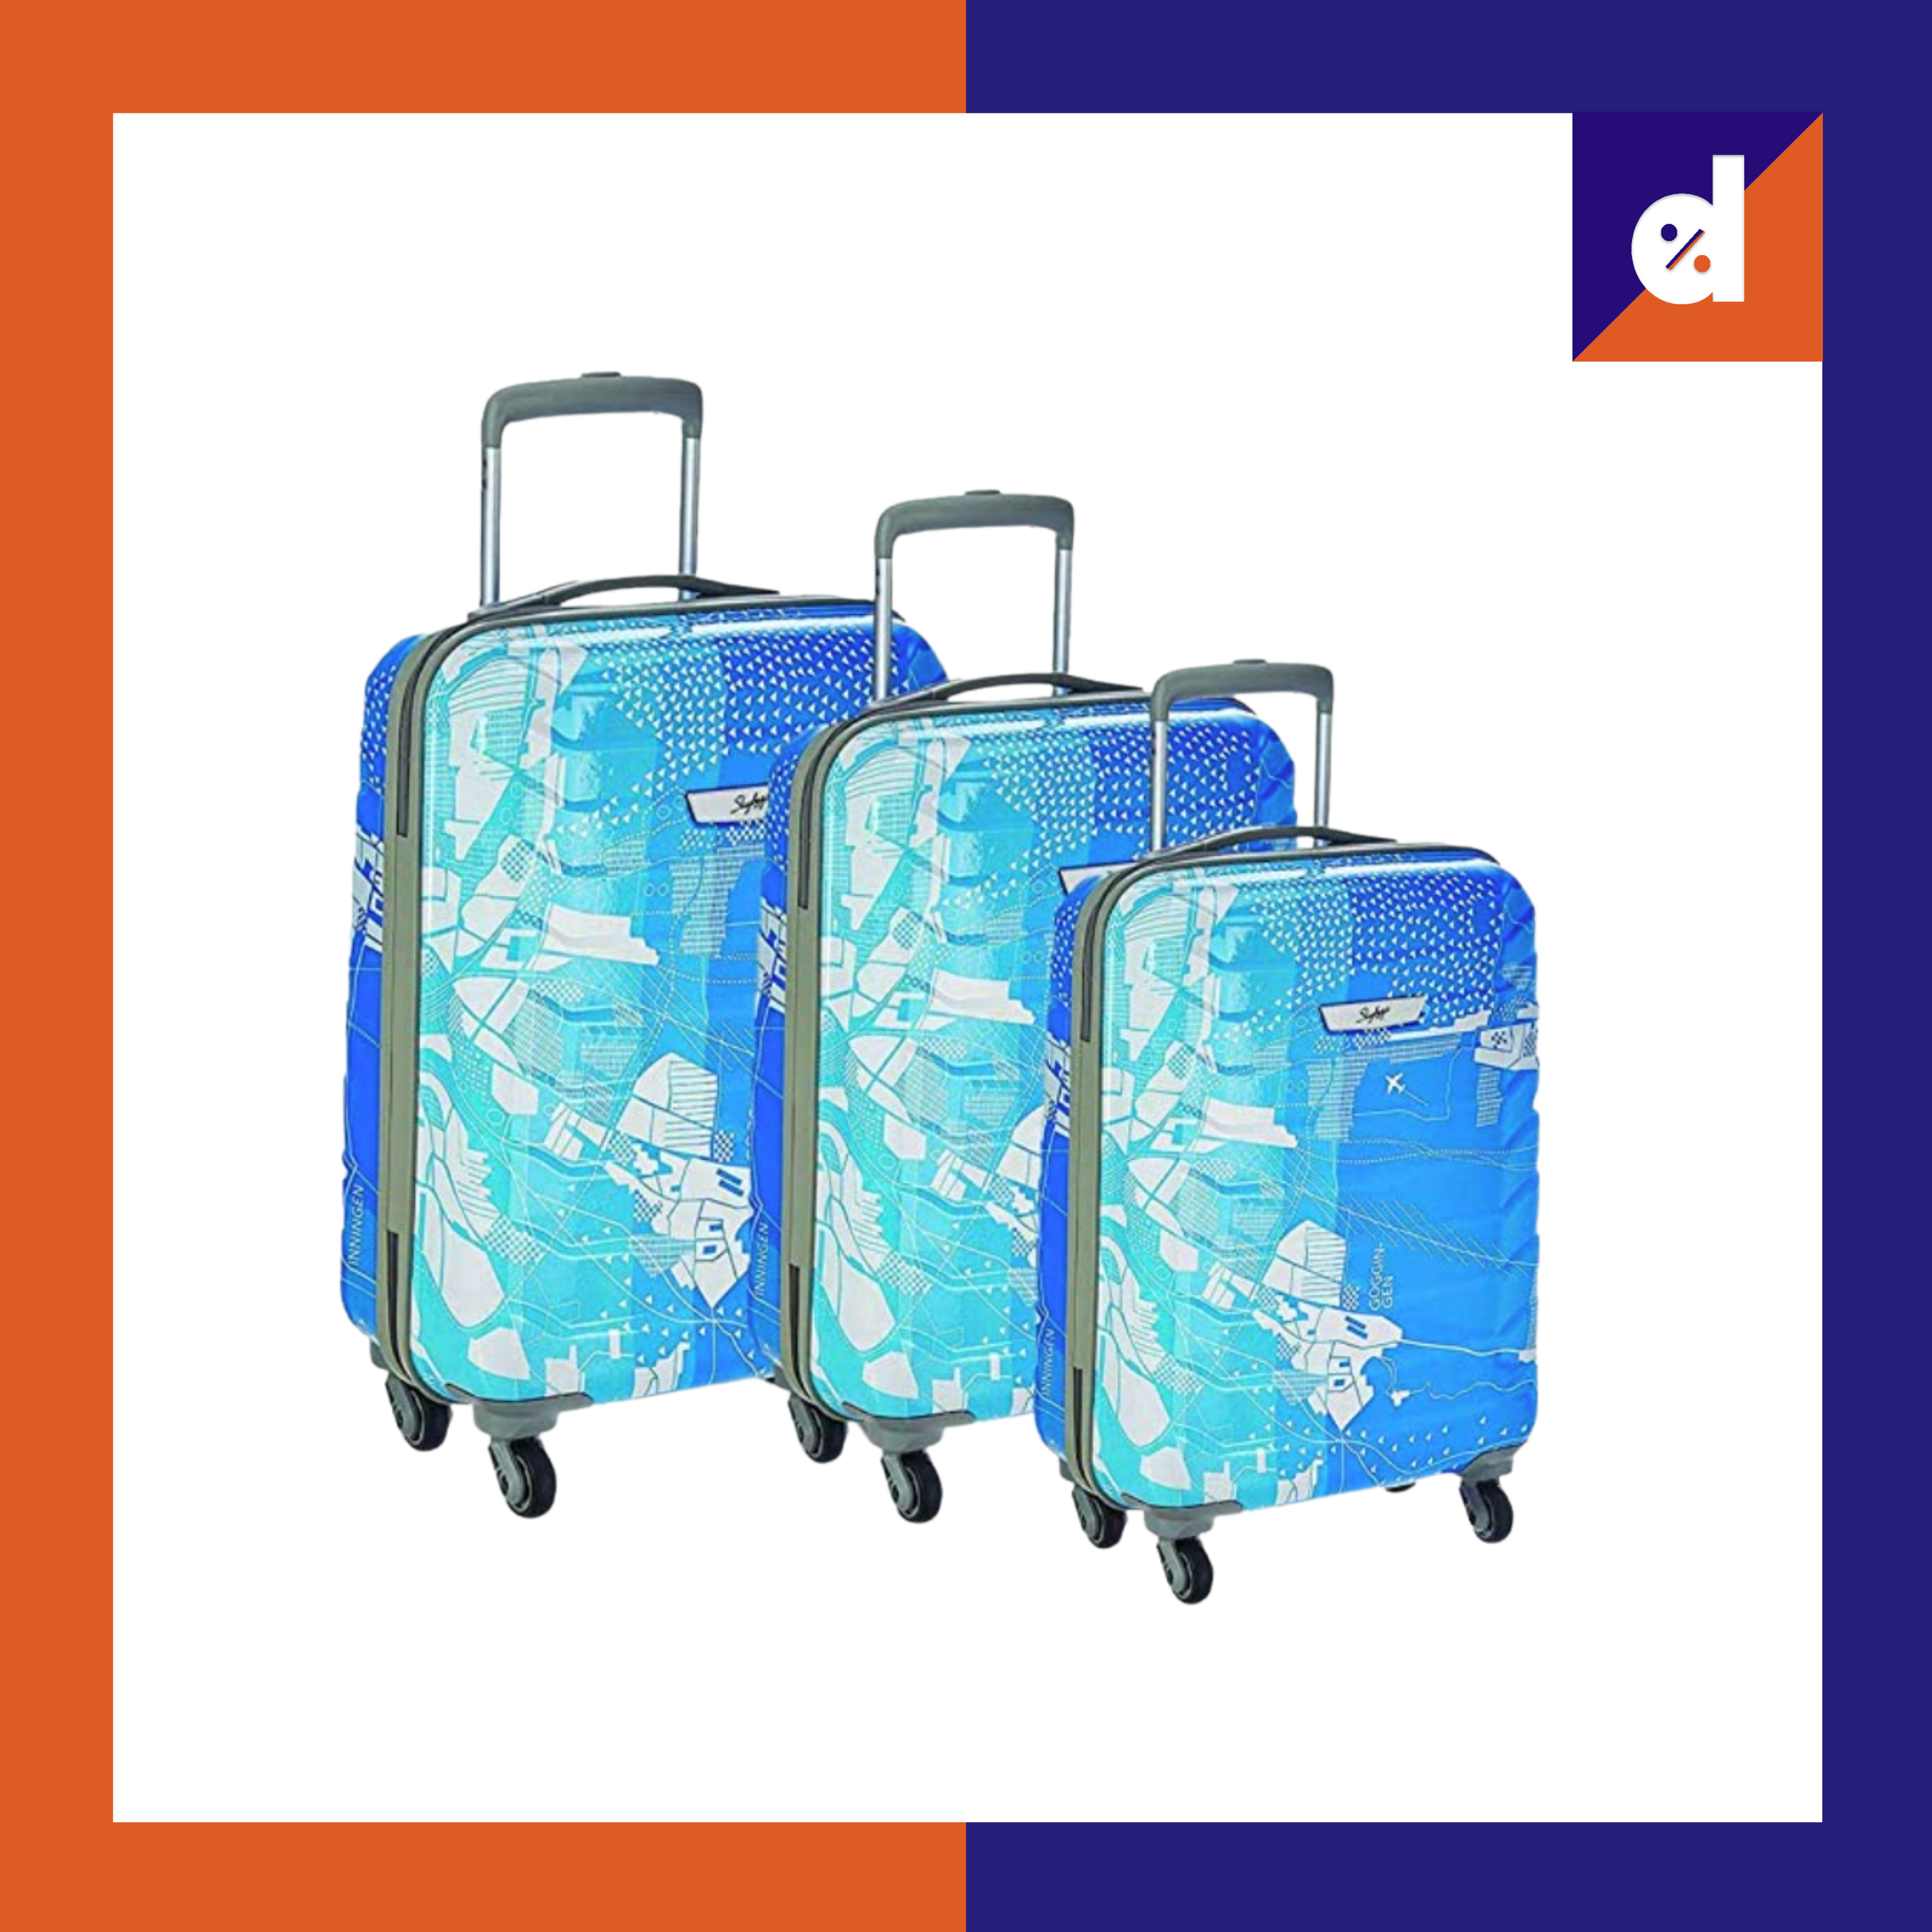 Skybags trooper polycarbonate luggage